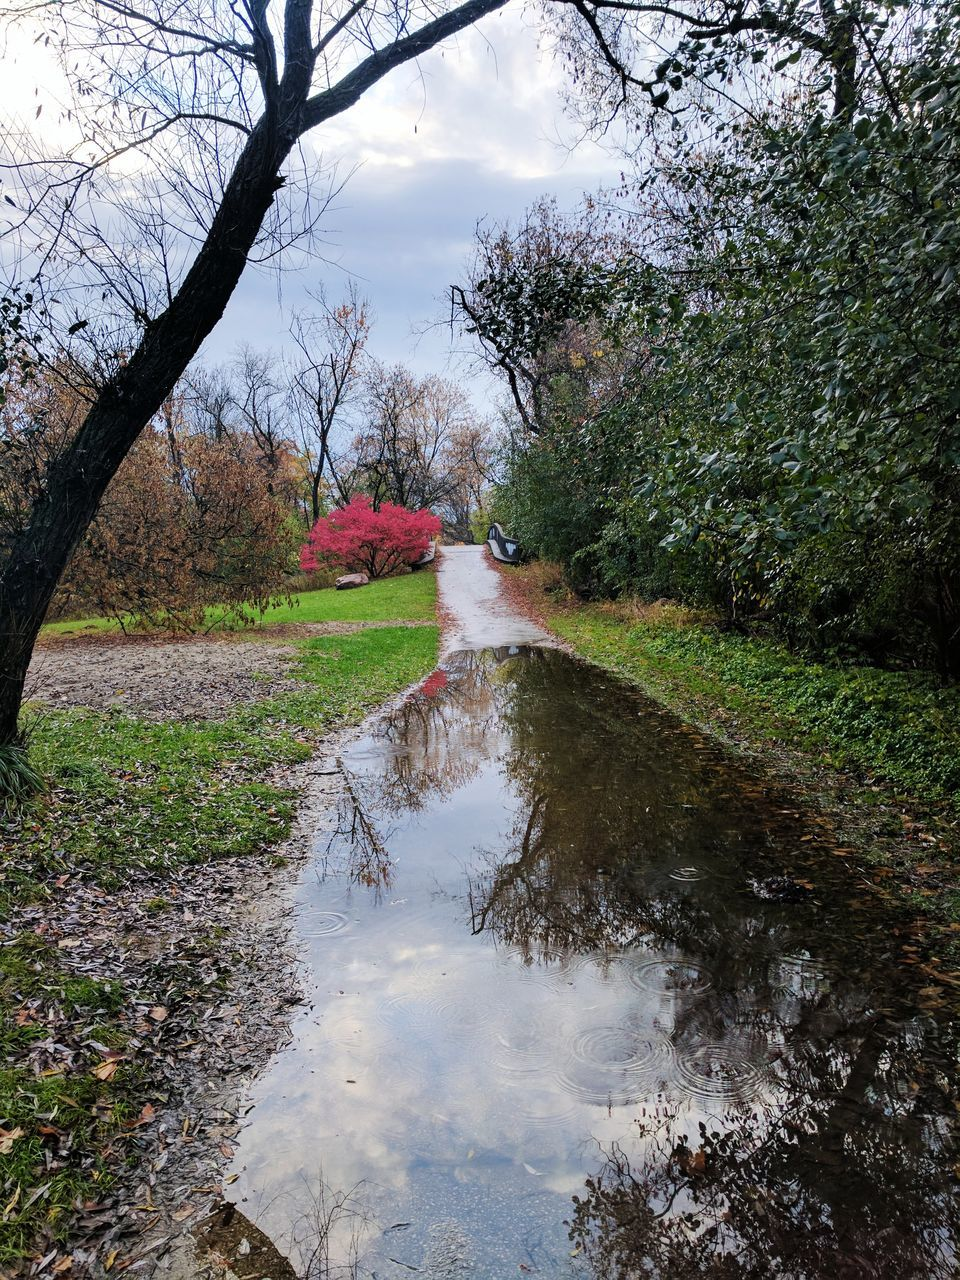 tree, nature, water, growth, reflection, beauty in nature, no people, day, tranquility, outdoors, sky, branch, scenics, flower, grass, puddle